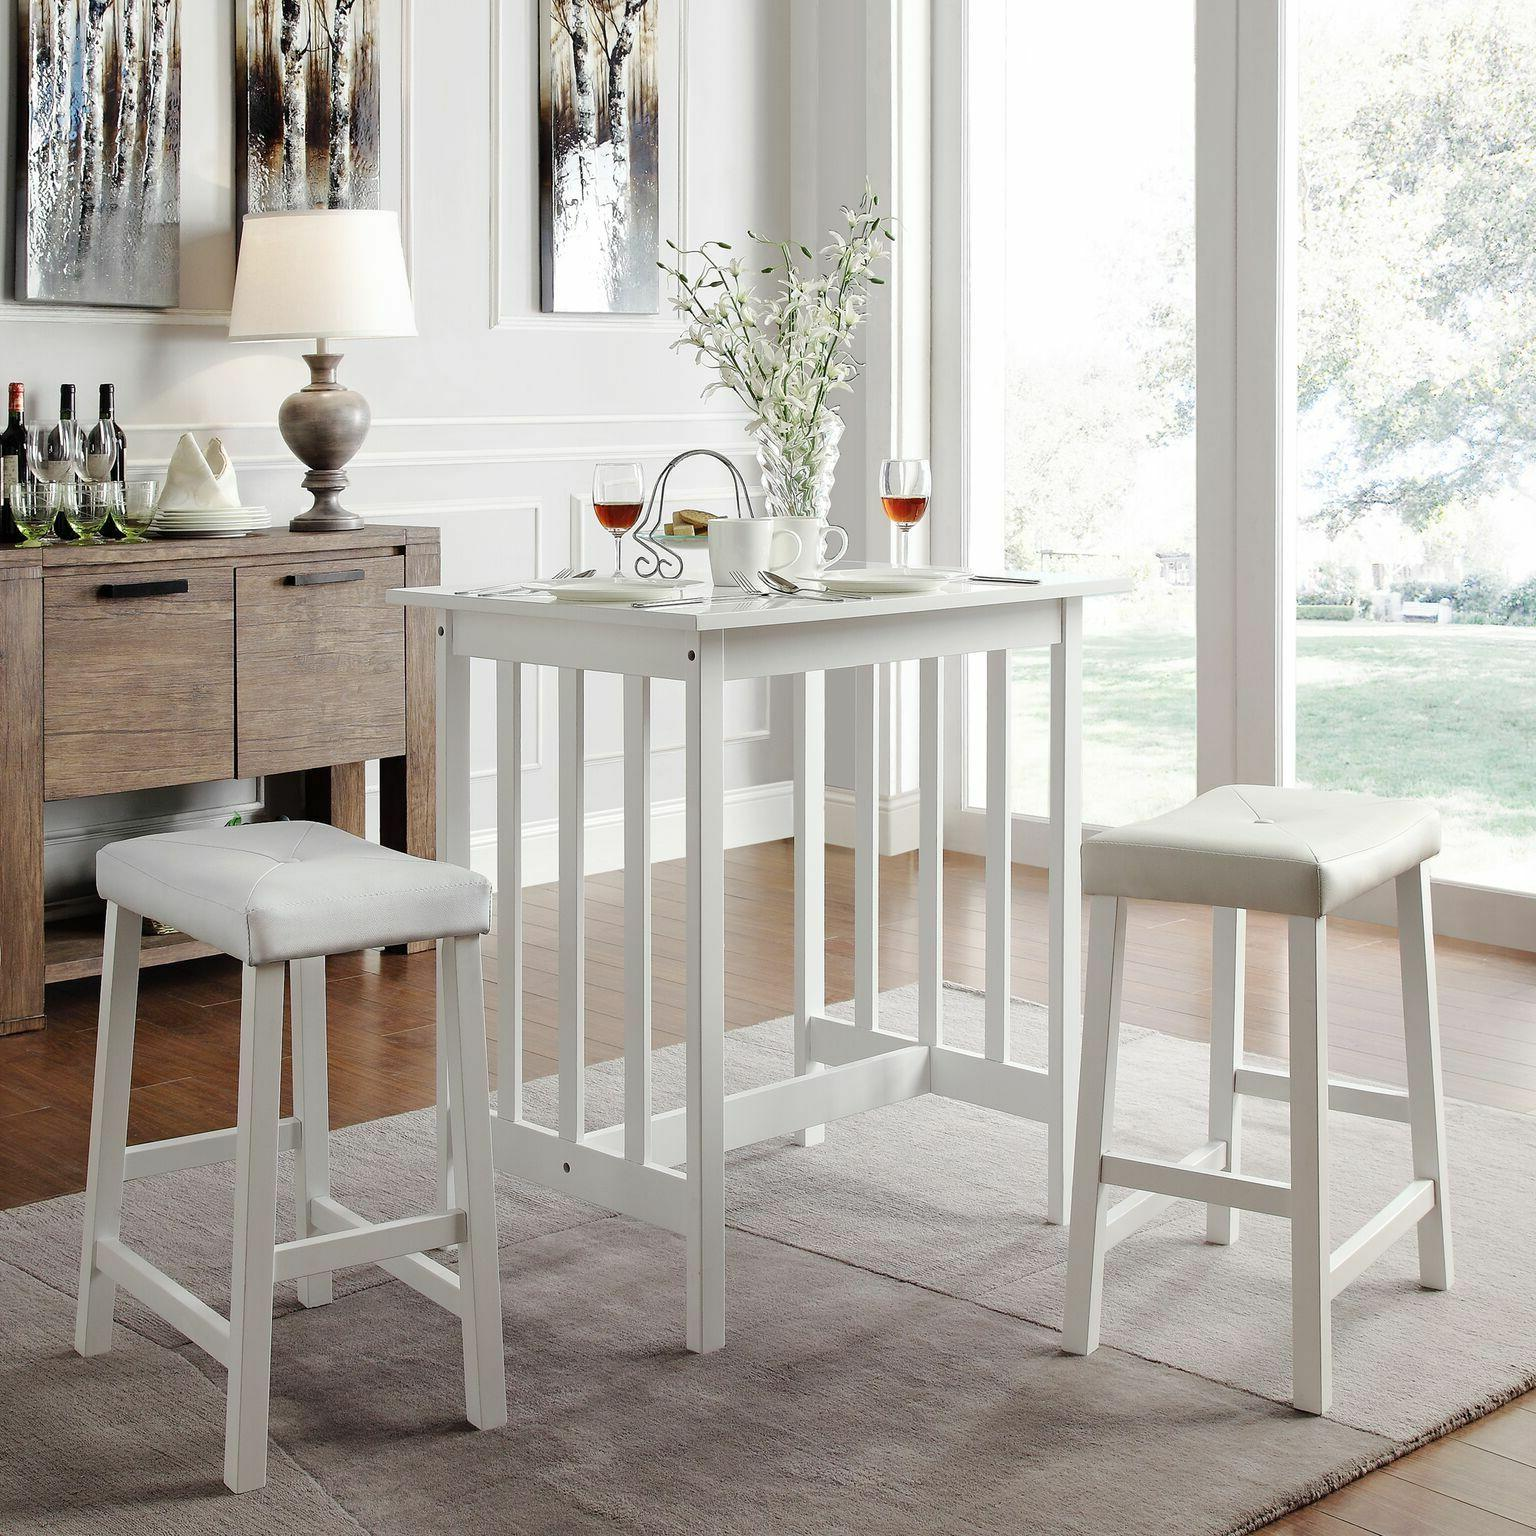 NEW 3PC White Kitchen Counter Height Dining Set Pub Bar Tabl